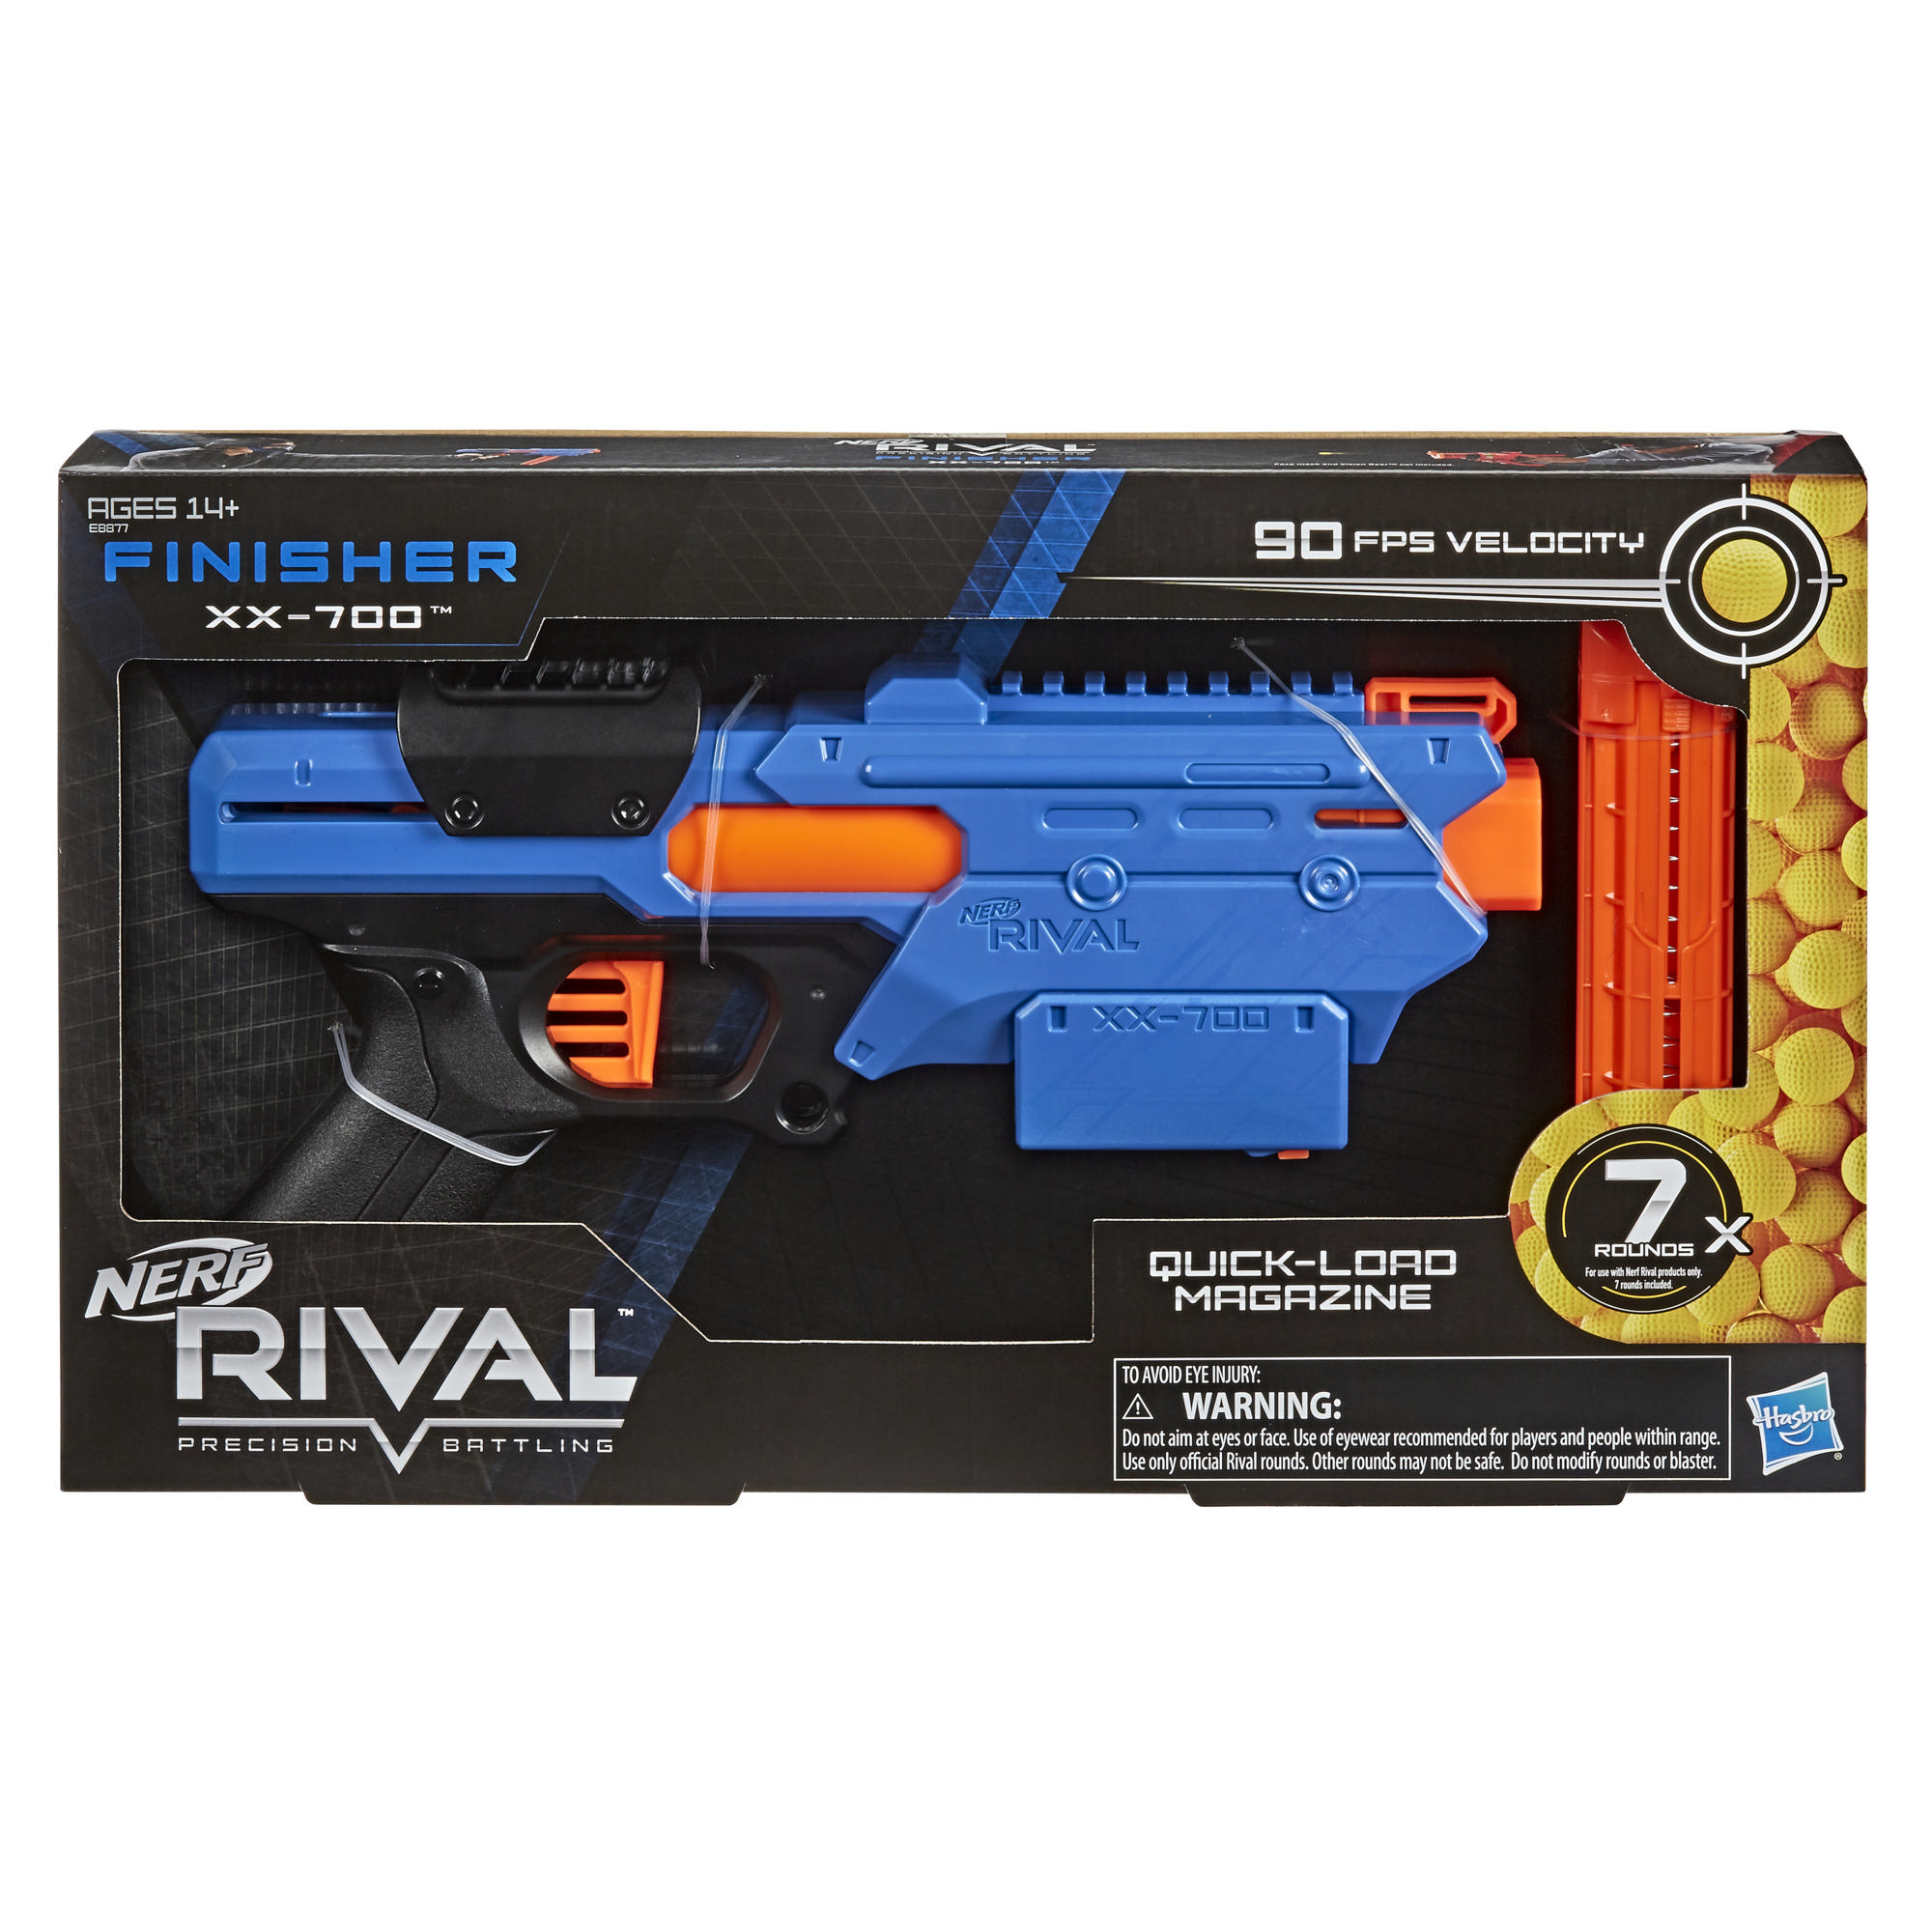 Nerf Rival Finisher XX-700 Blaster -- Quick-Load Magazine, Spring Action, 7 Nerf Rival Rounds -- Team Blue